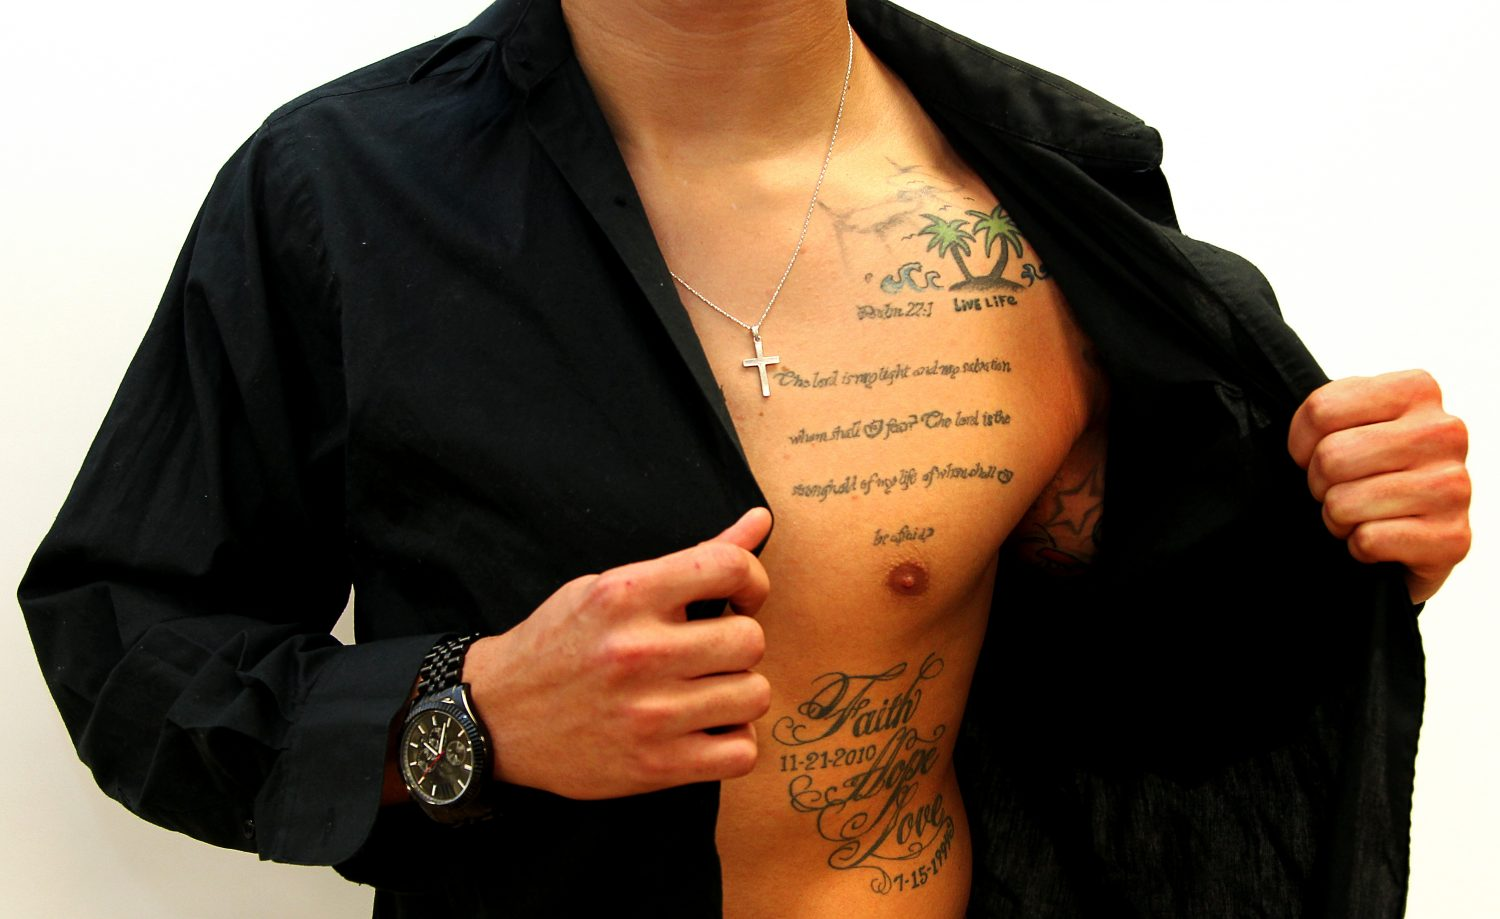 Once taboo, tattoos find new life in job sector